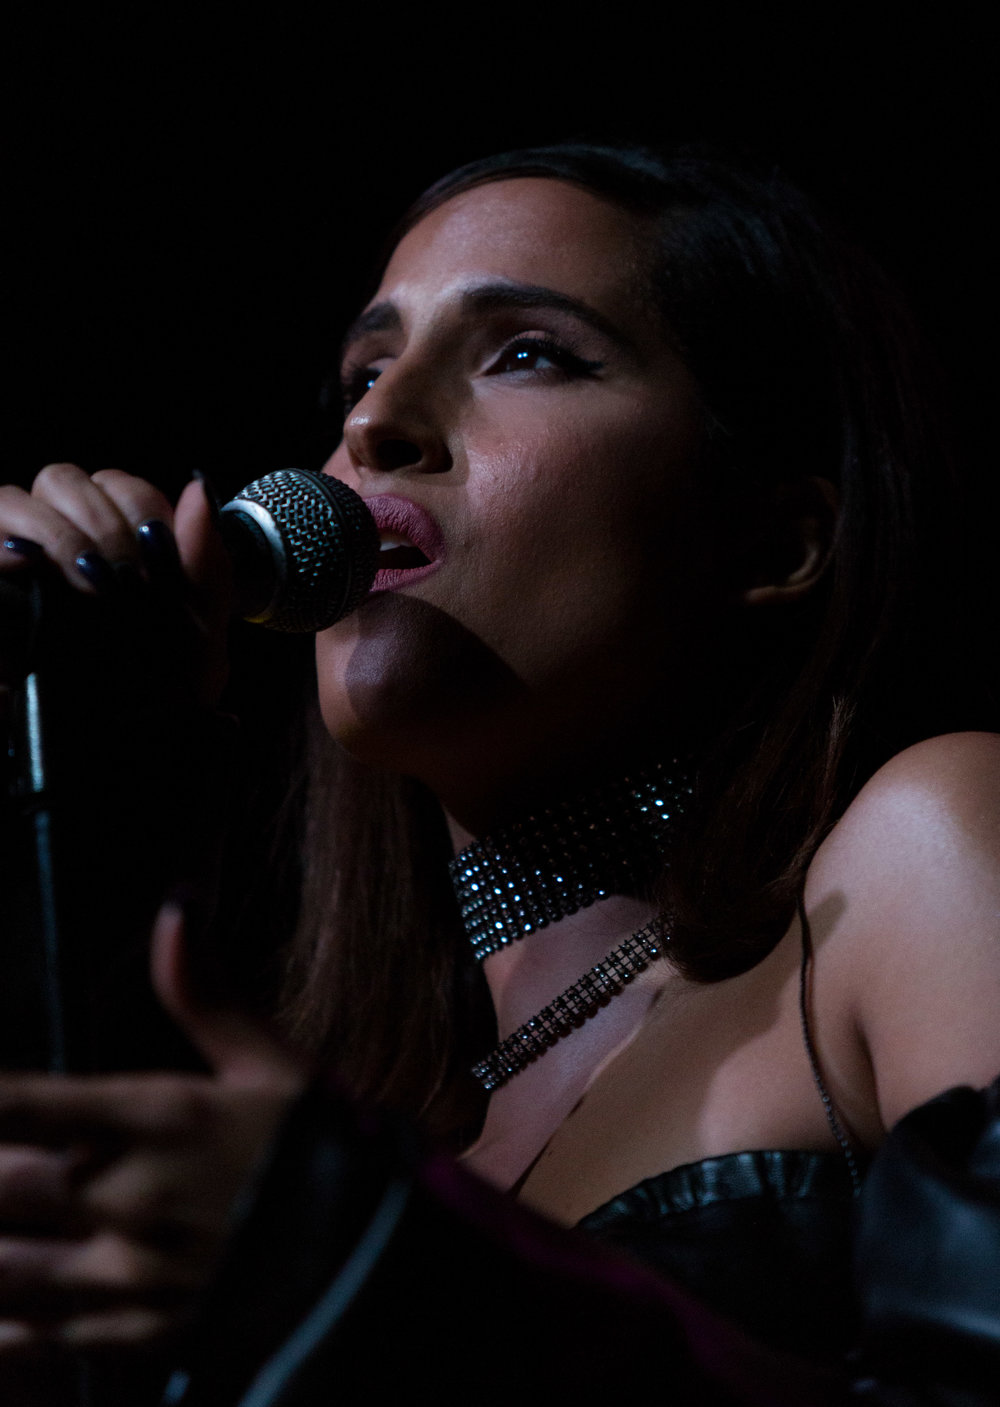 "Swedish singer-songwriter Snoh Aalegra performs ""You Got Me"" as part of her opening set for Canadian R&B artists Daniel Caesar (Ashton Simmonds) for his ""Freudian"" tour named after his debut album with the same name at the Fonda Theatre on Halloween on Tuesday, October 31st 2017 in Los Angeles, Calif. (Photo by: Thane Fernandes)"